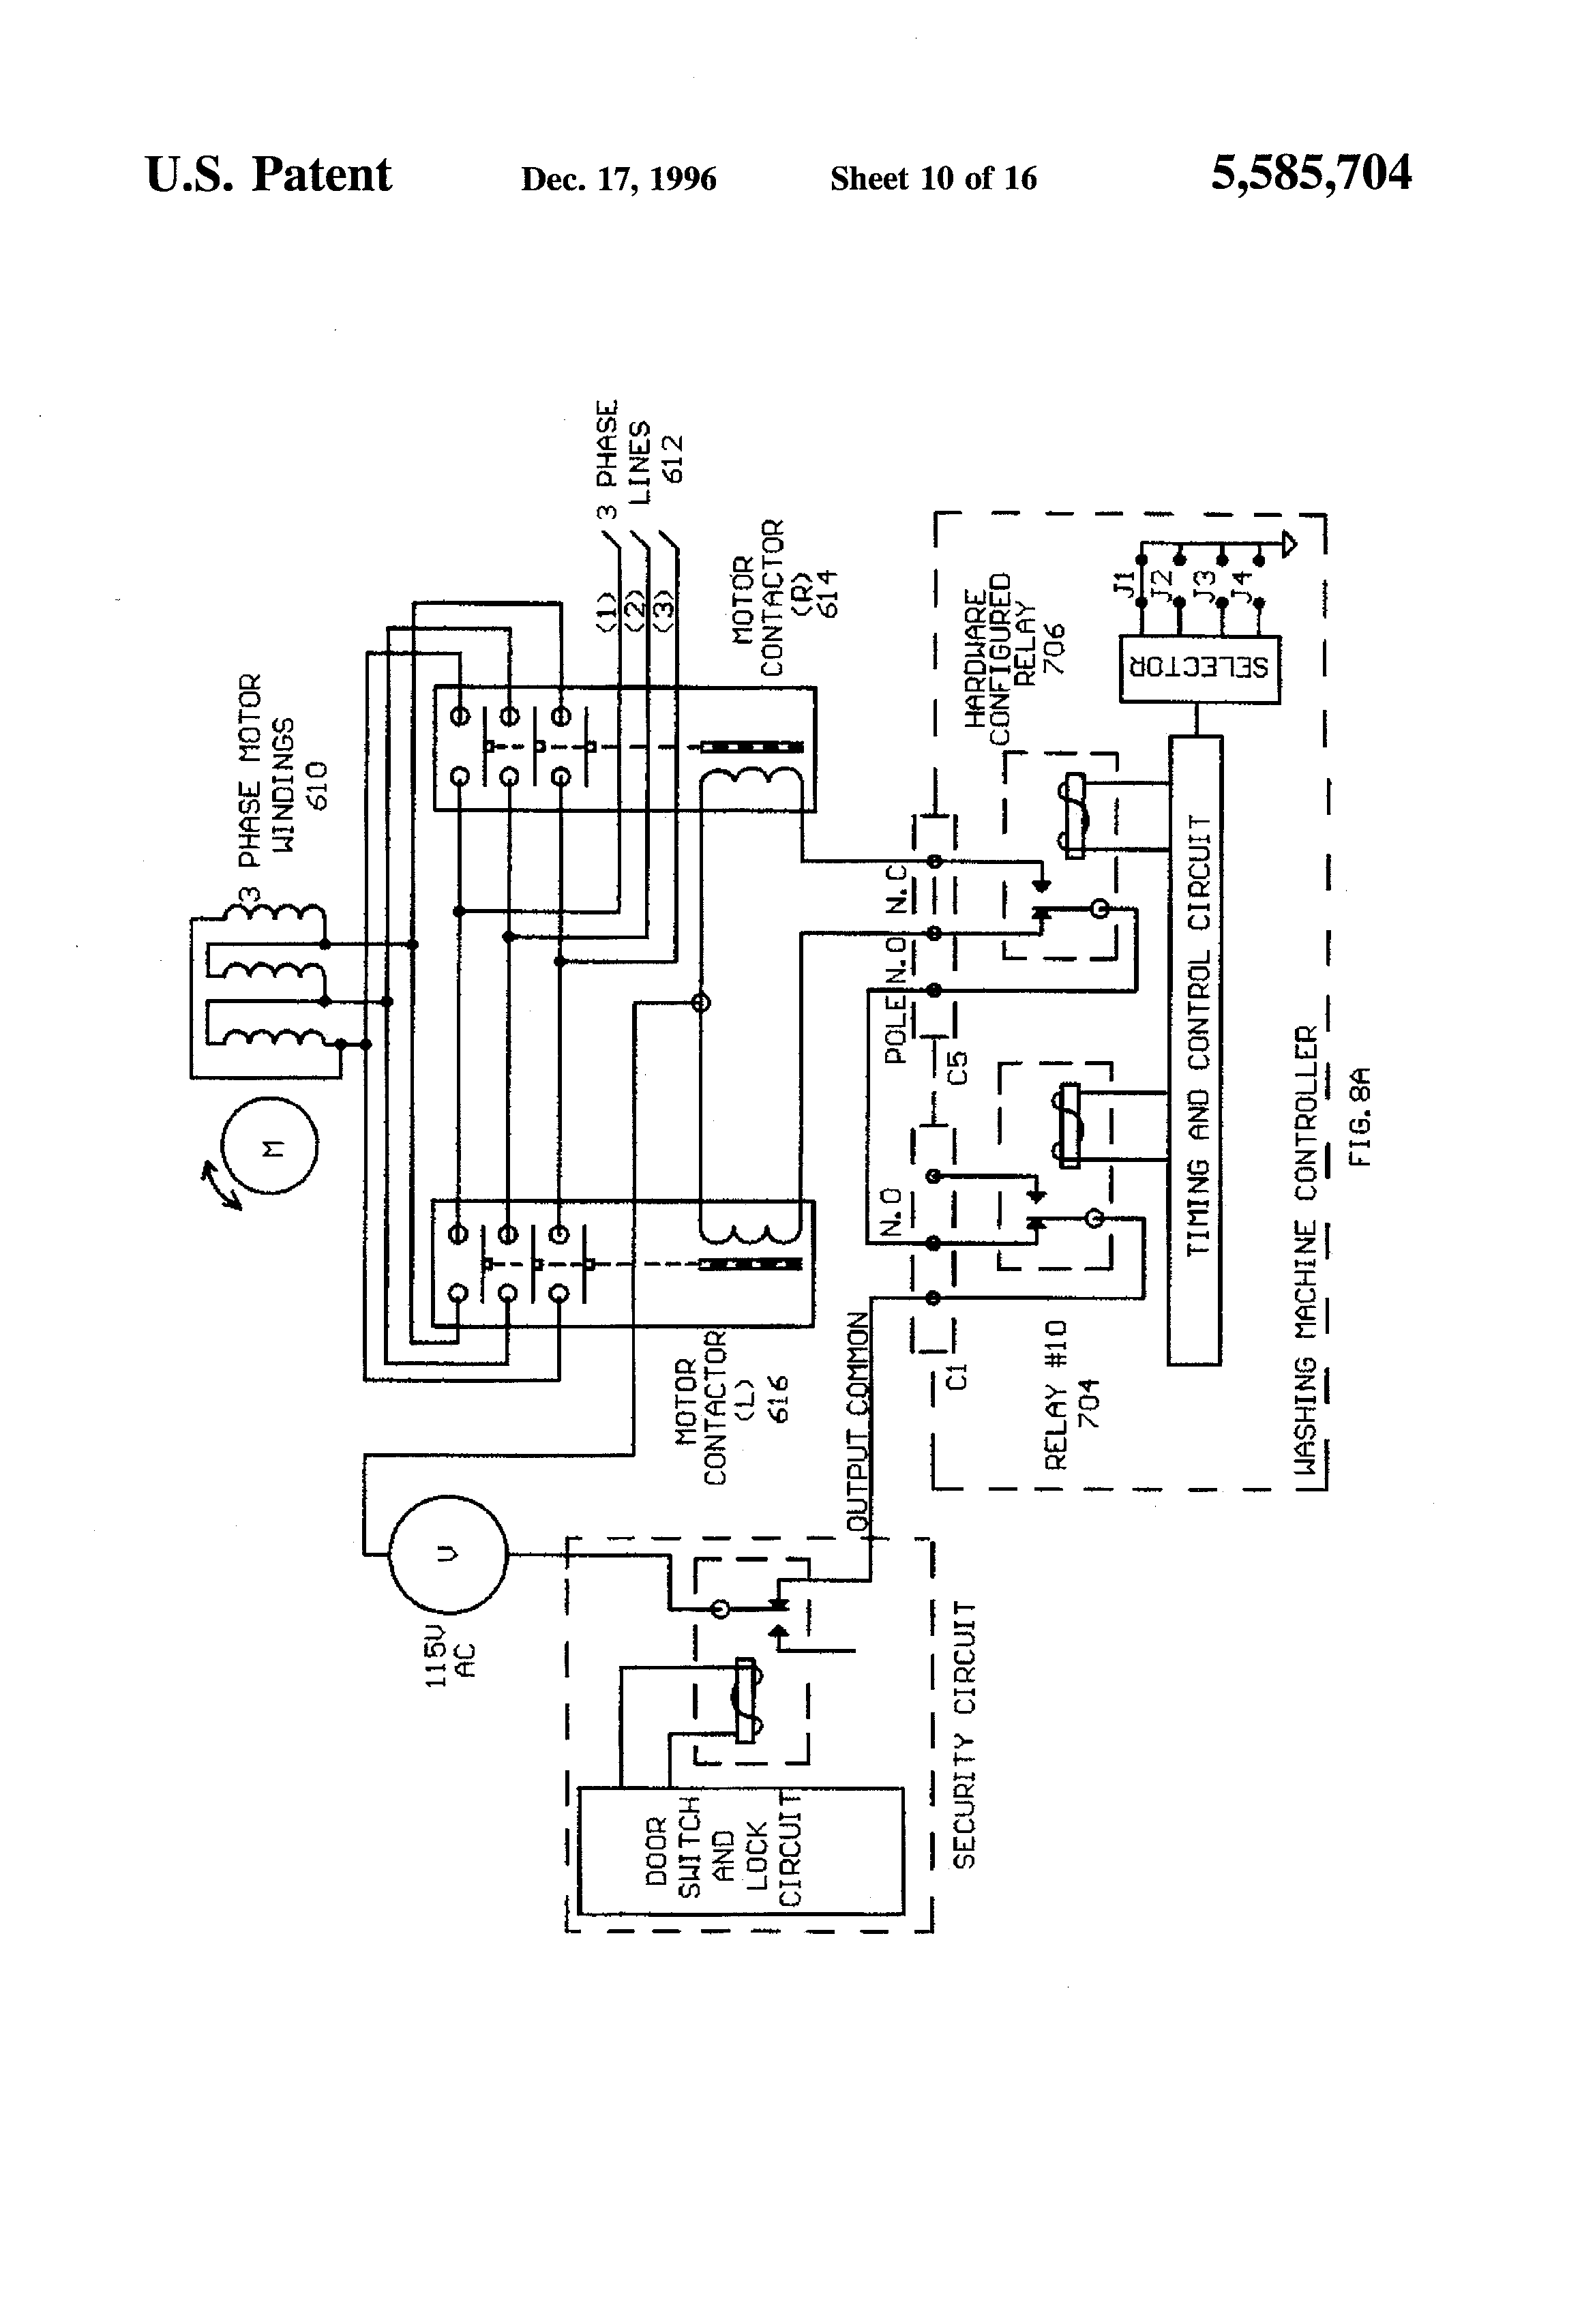 semi automatic washing machine wiring diagram patent us5585704 - computer means for commercial washing ... semi automatic washing machine circuit diagram #3